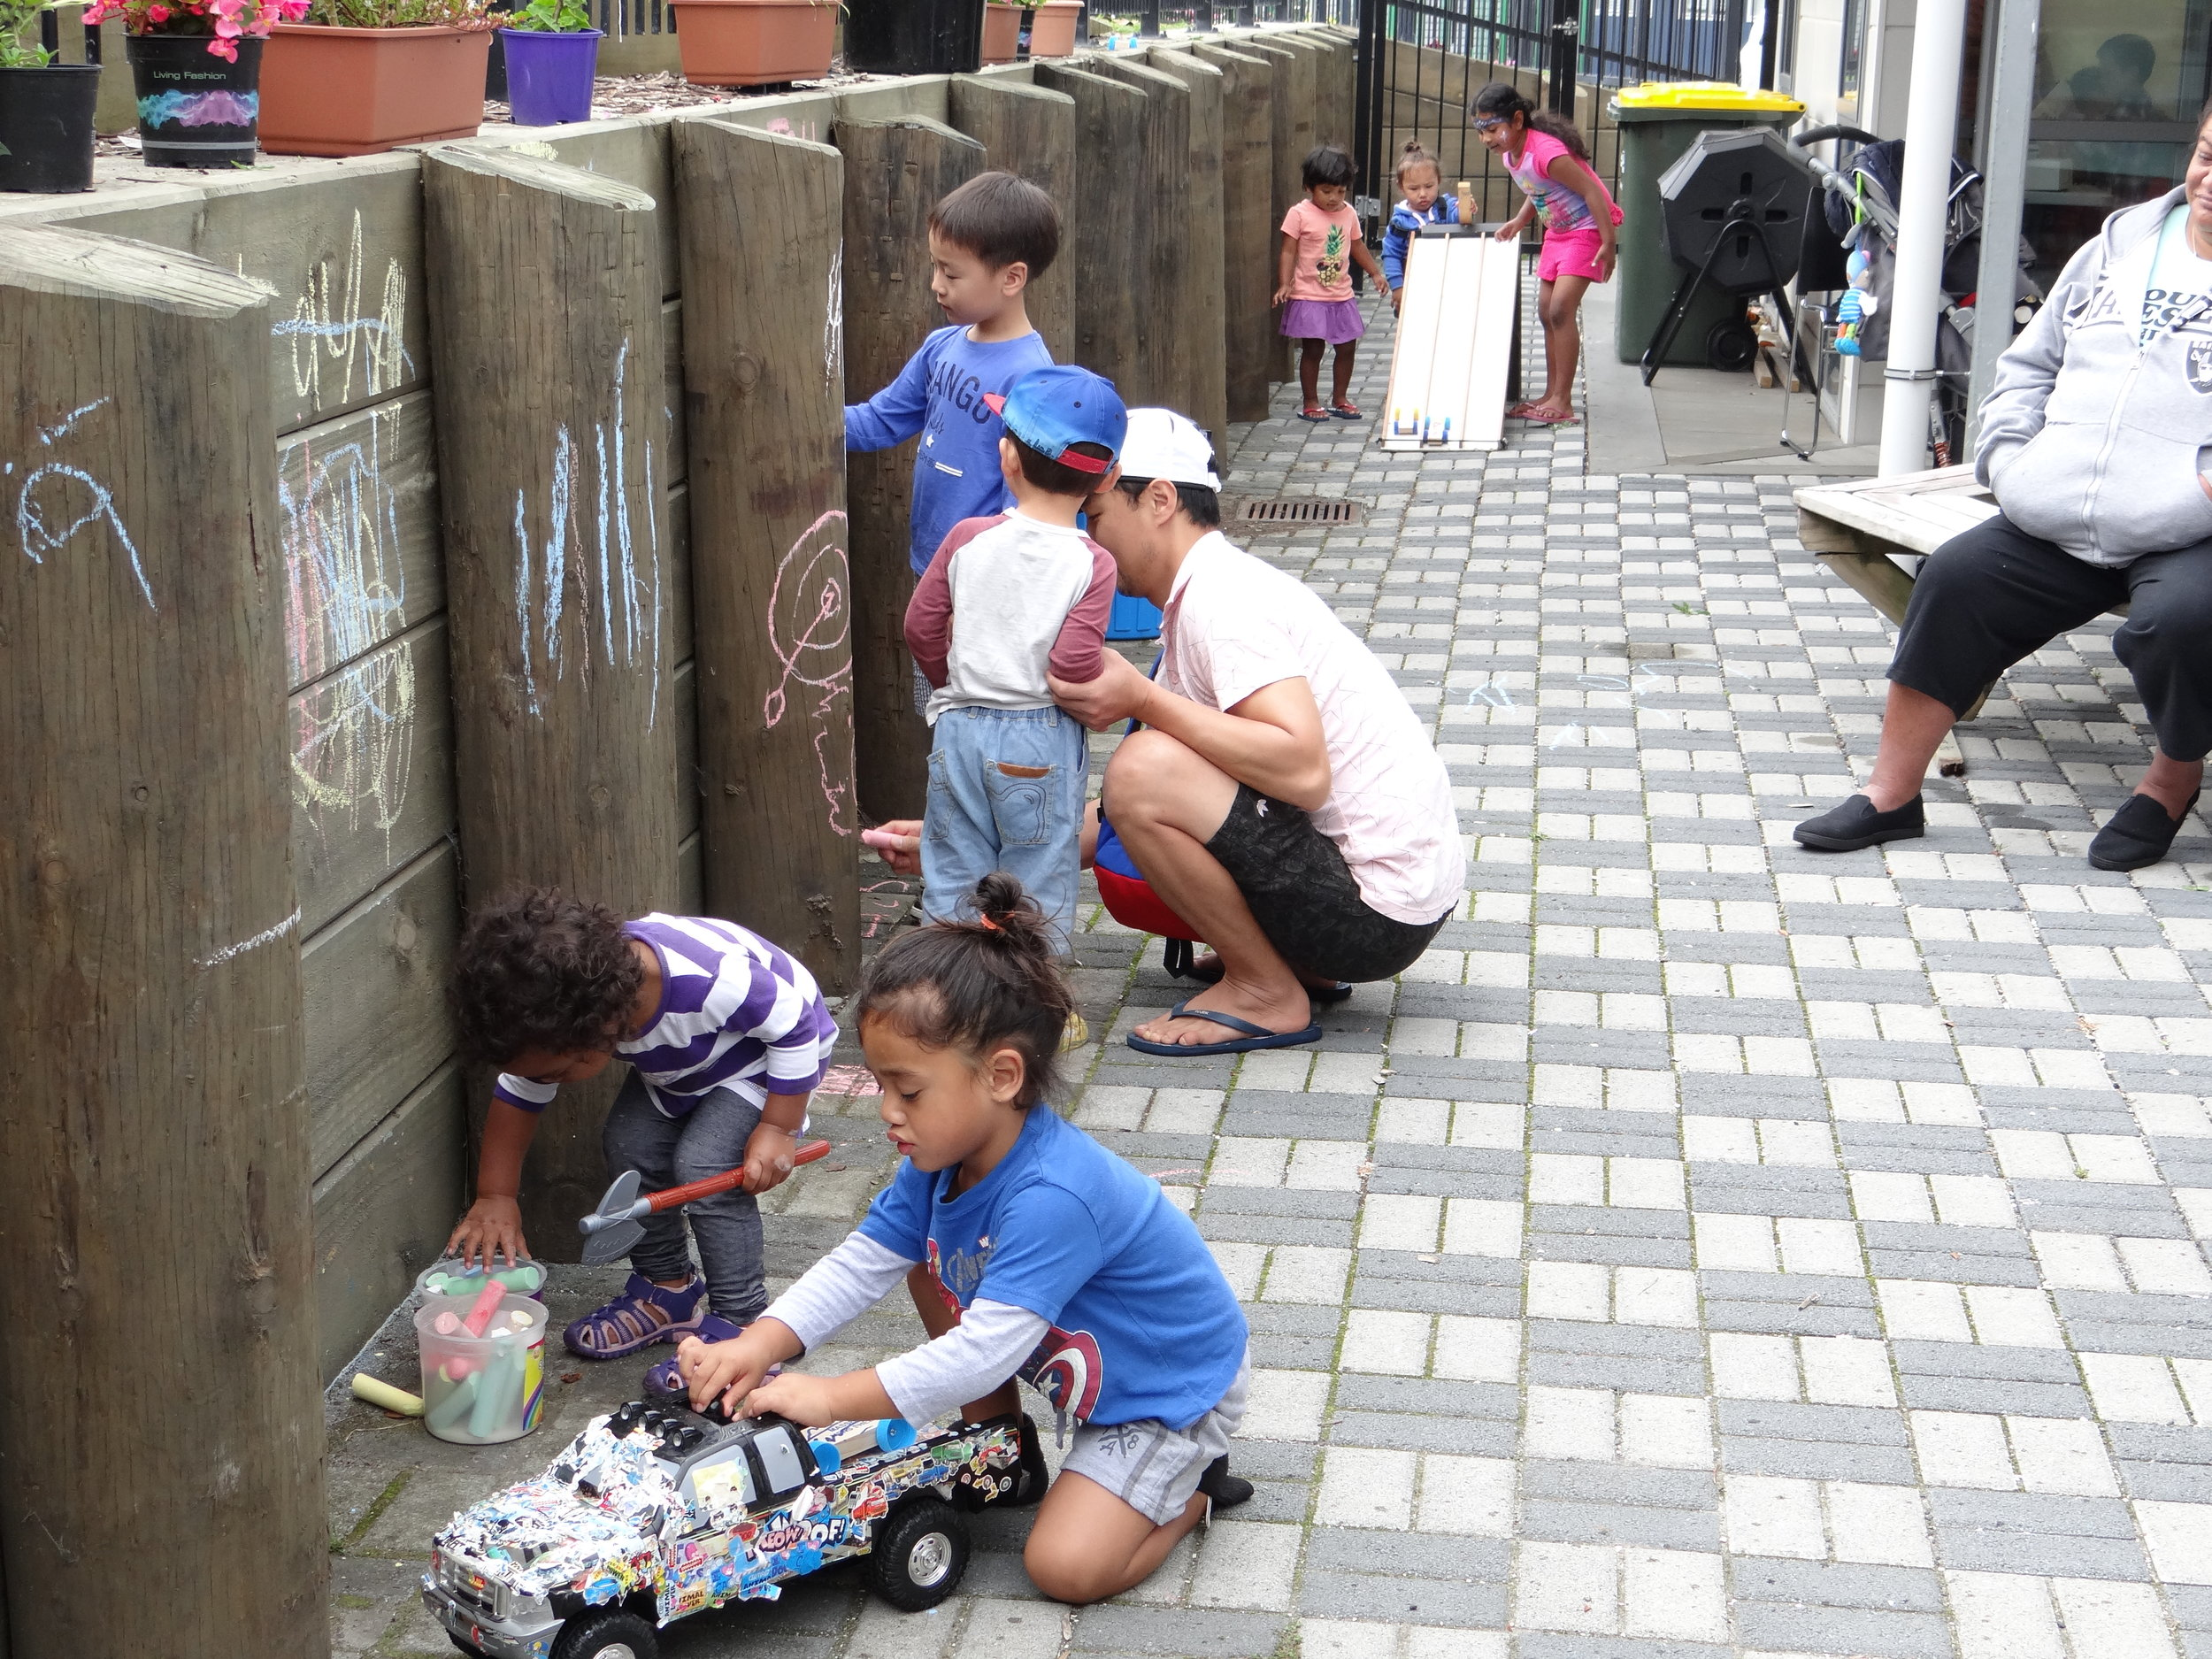 This year the Hub hosted the 2nd annual Neighbours Day. Here you can see the local neighbourhood kids doing chalk drawings on the wall and showing off their face paint.